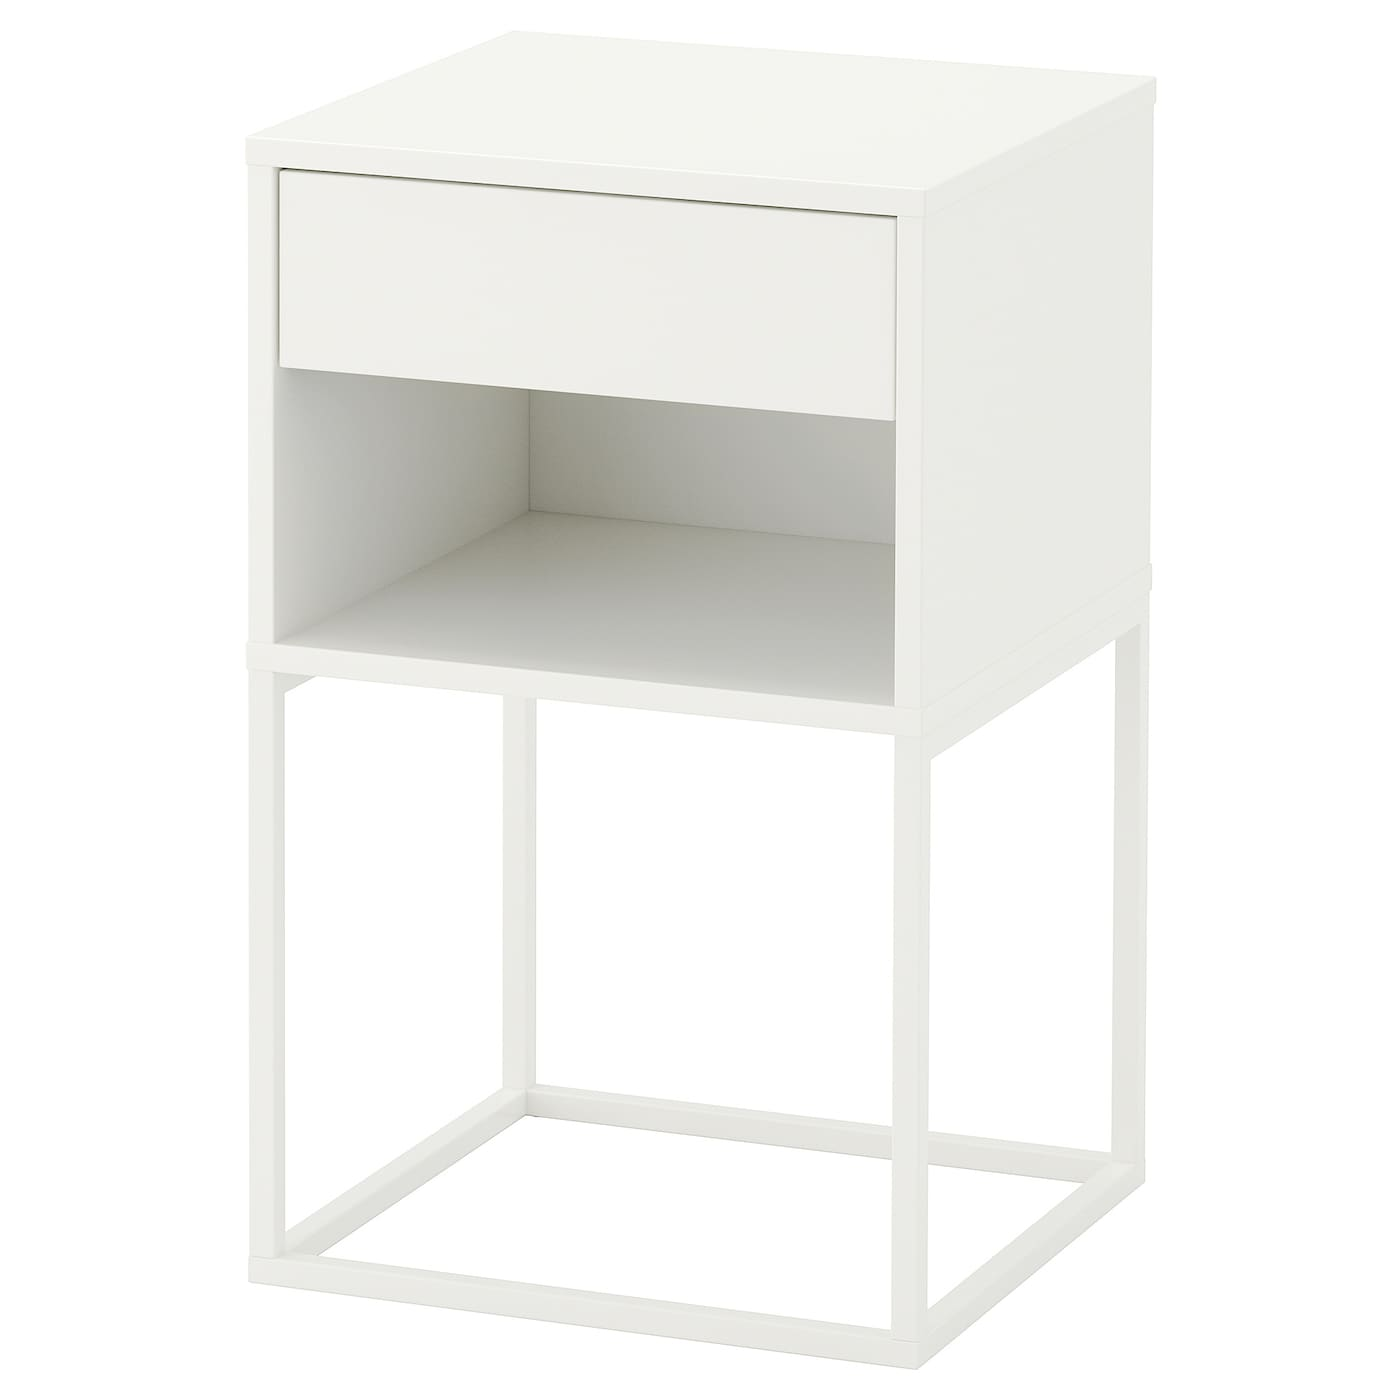 white hbt narrow hambleton furniture narow painted table off henleaze sbsc small cabinethenleaze bedsides detail cabinet bedside